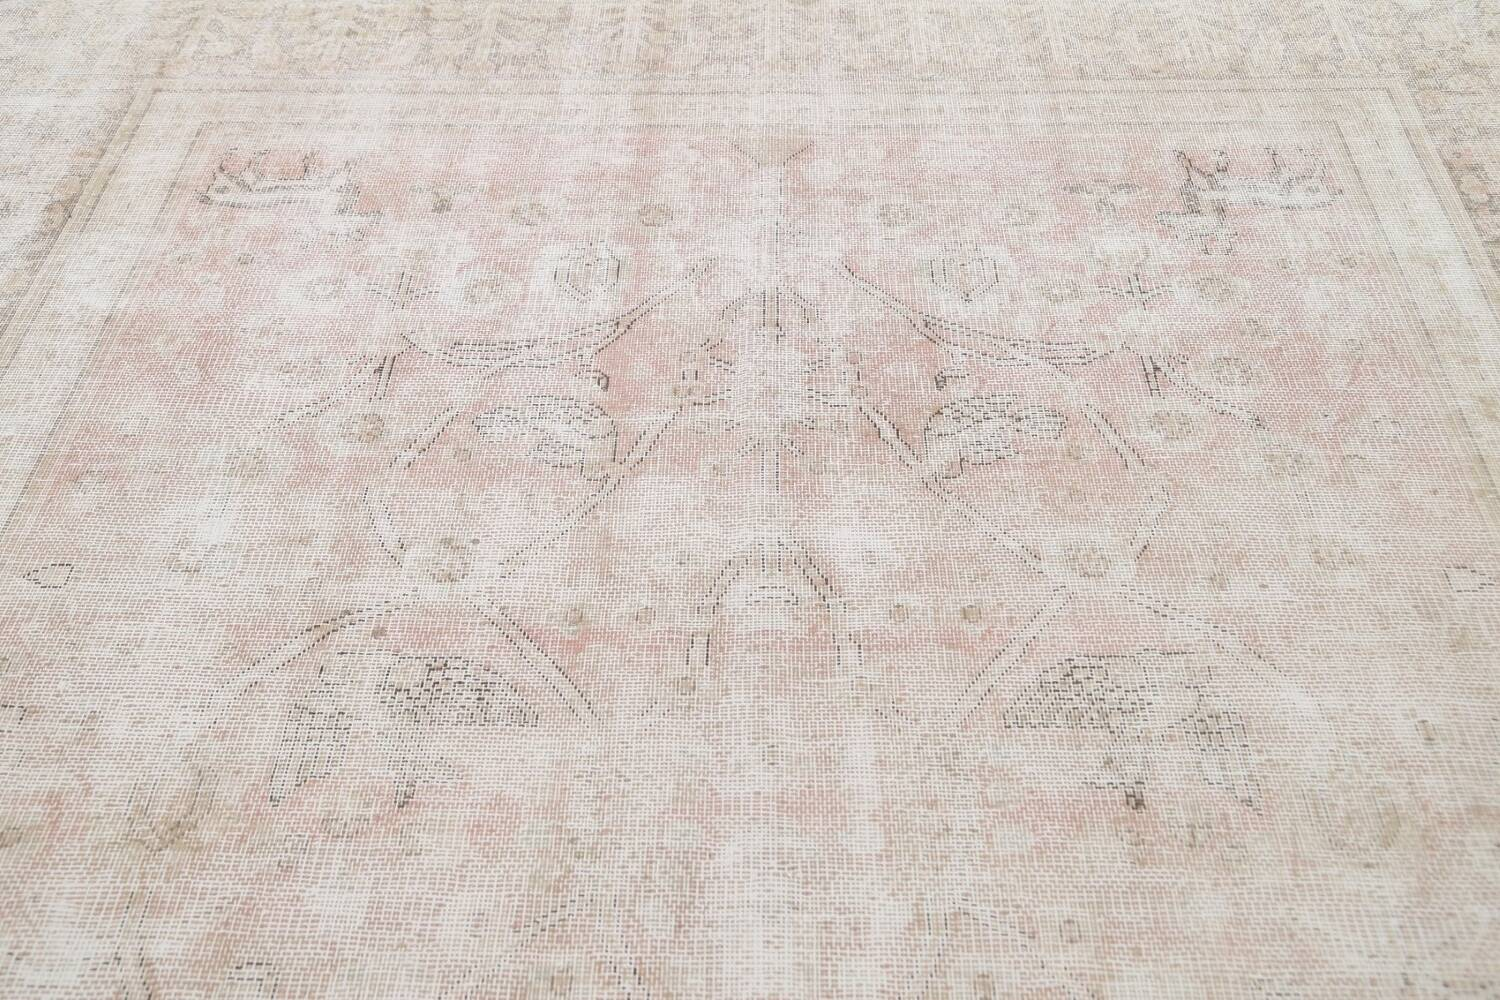 Antique Muted Distressed Tabriz Persian Area Rug 9x11 image 12